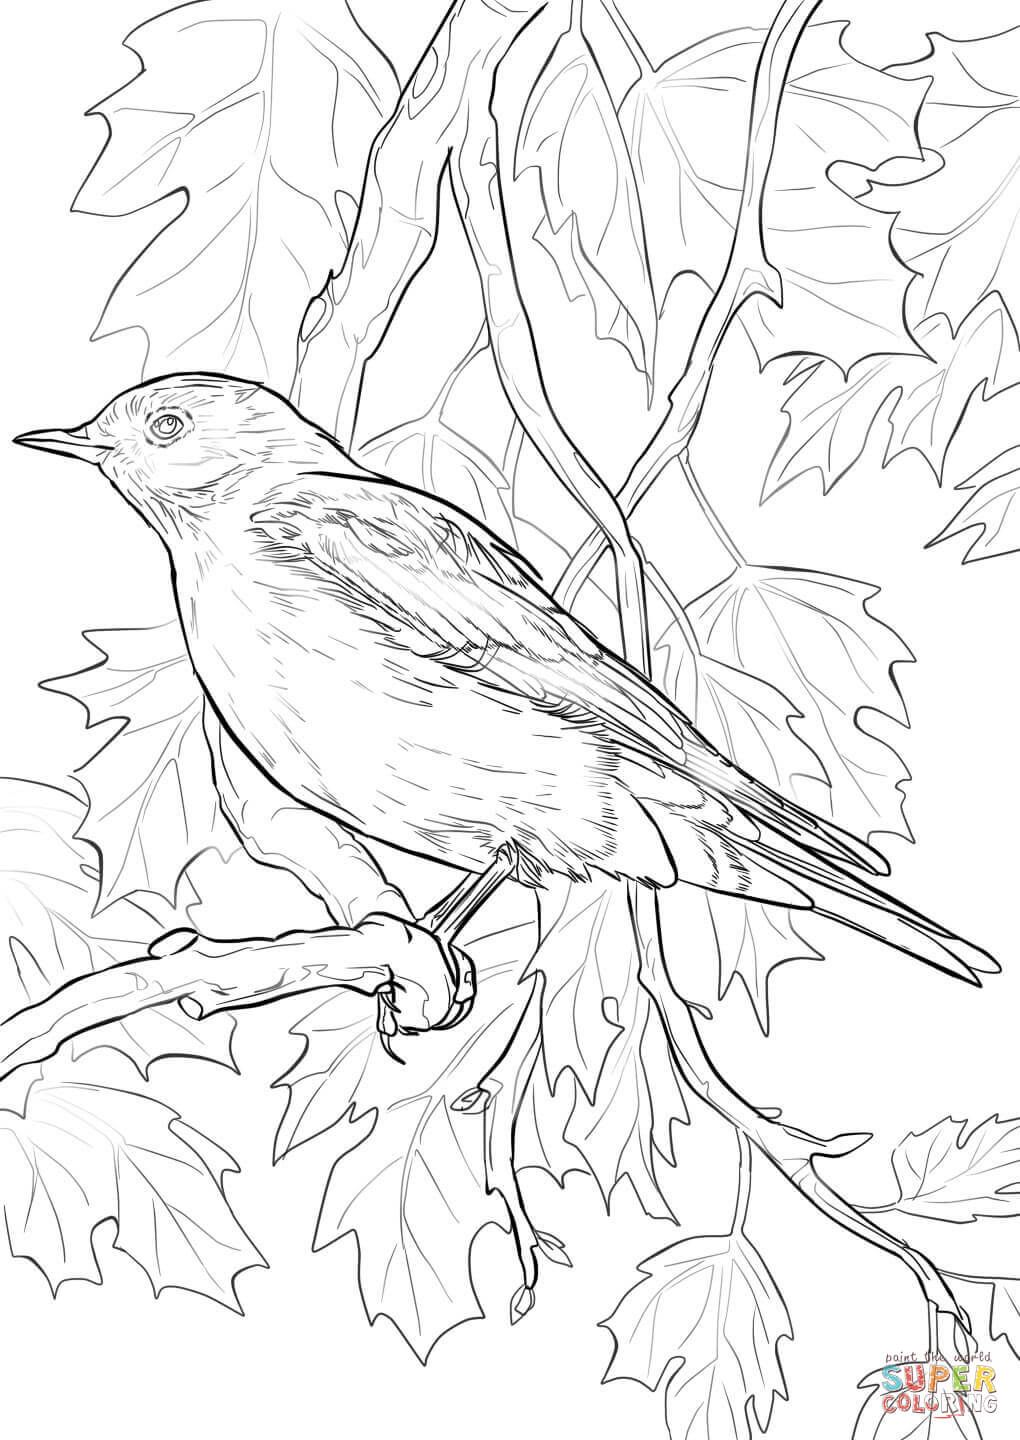 Mountain Bluebird Coloring Page Free Printable Coloring Pages Bird Coloring Pages Coloring Pages Free Printable Coloring Pages